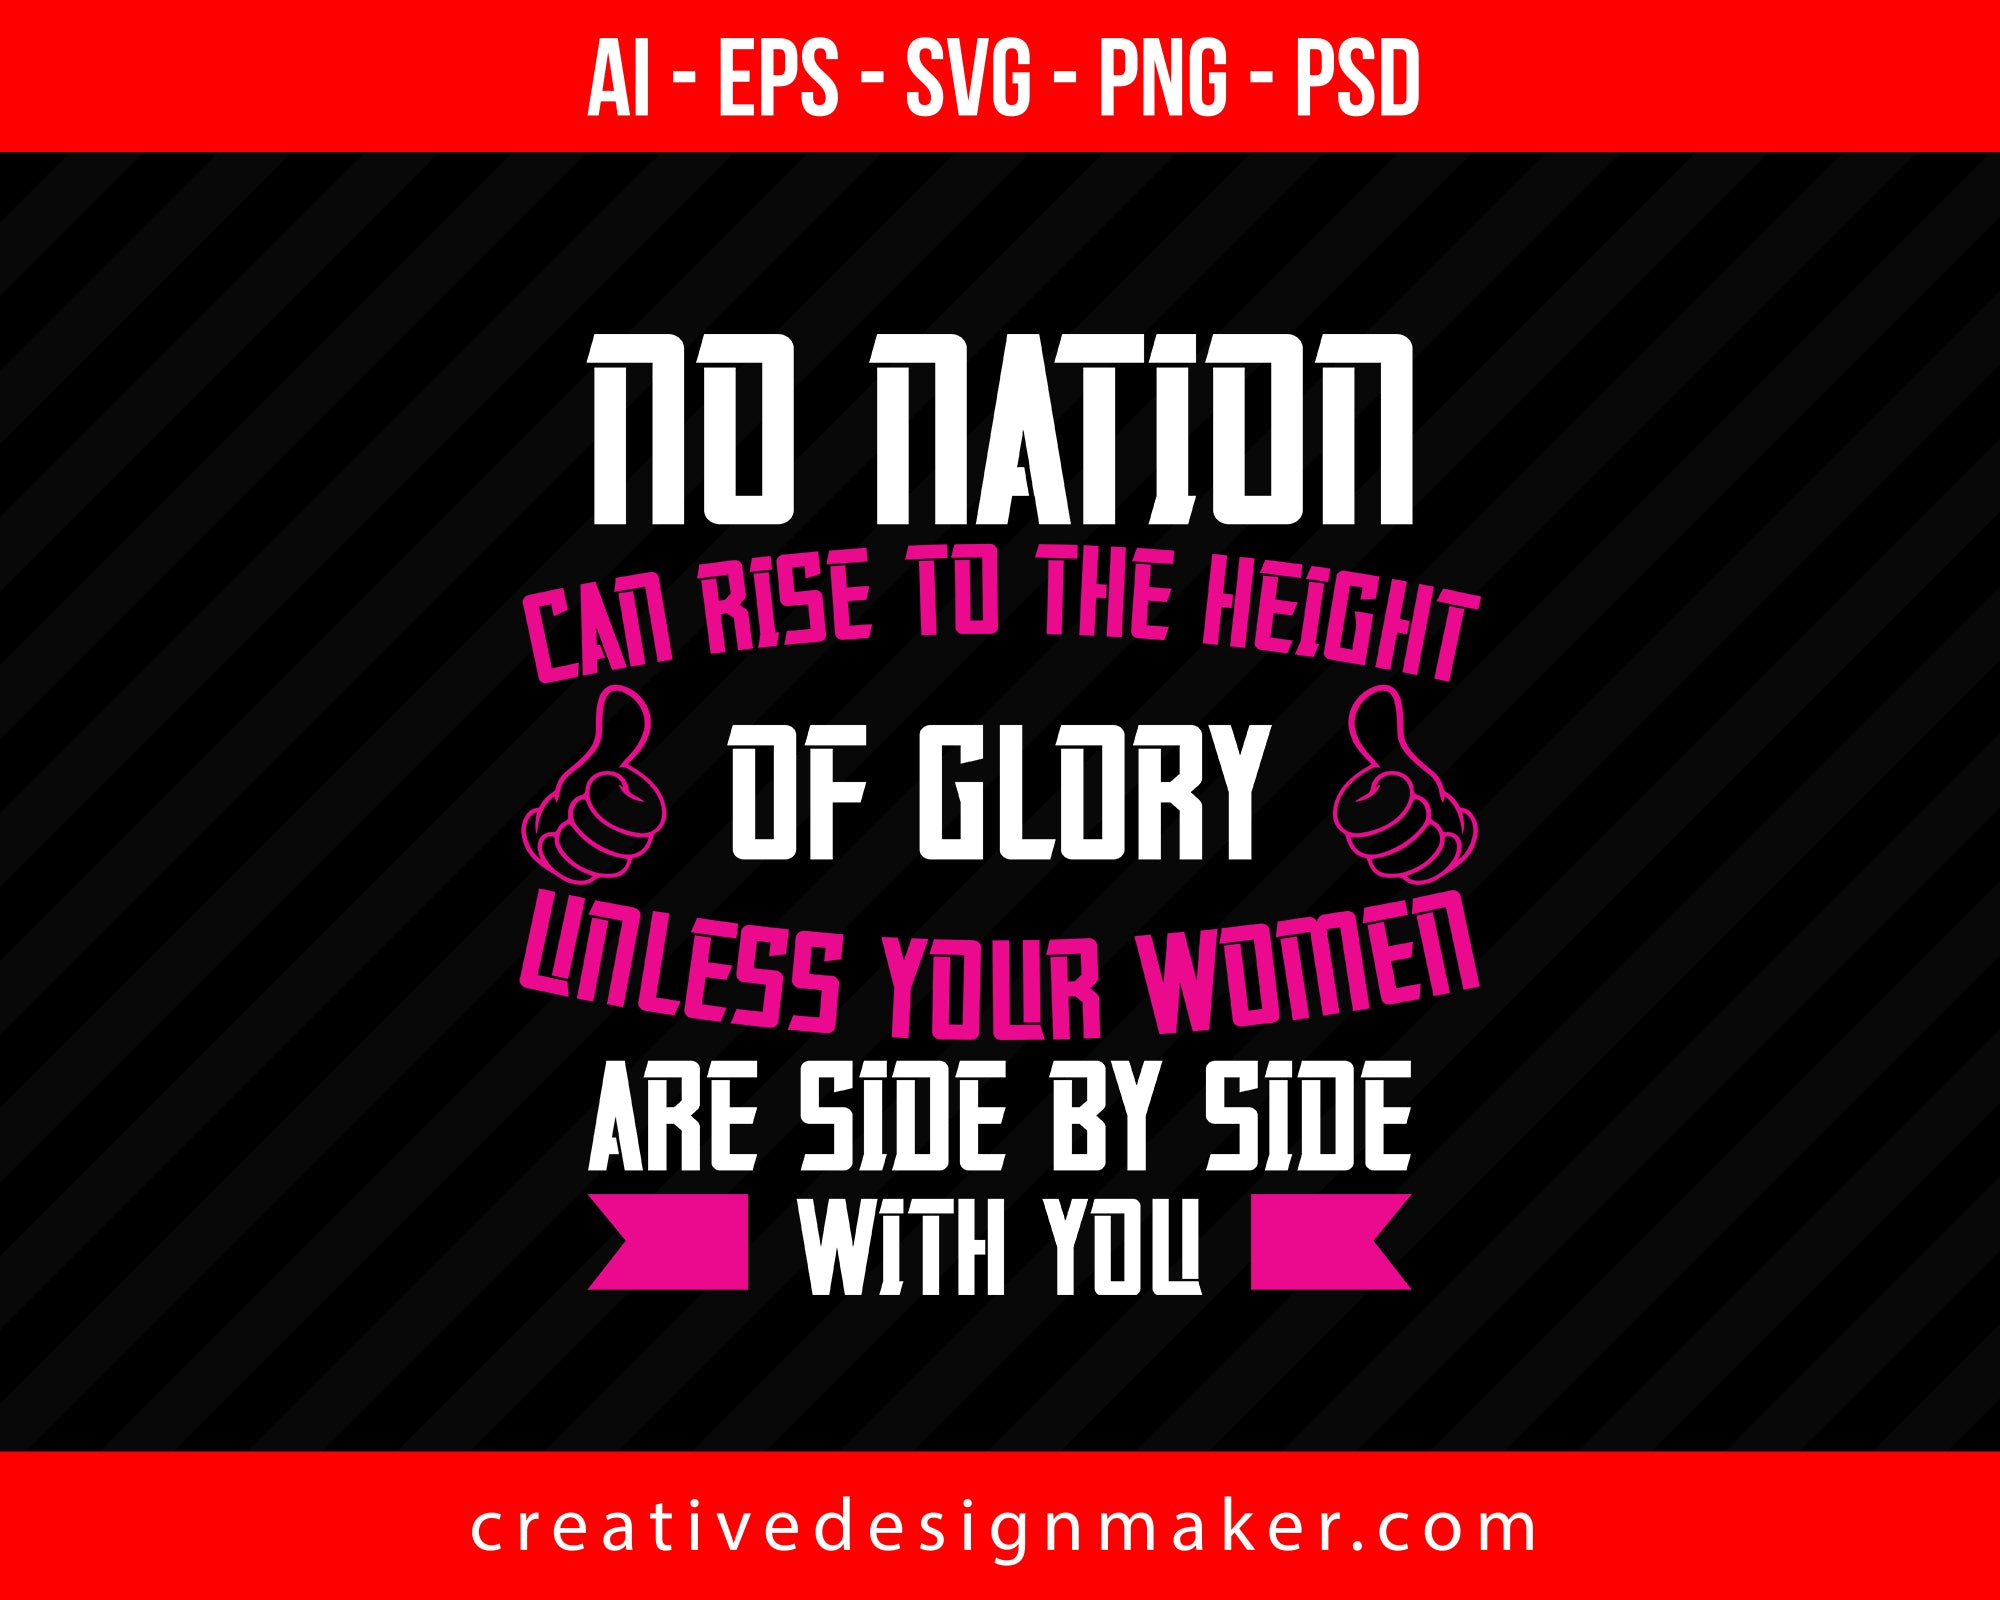 No nation can rise to the height of glory unless your women are side by Women's Day Print Ready Editable T-Shirt SVG Design!